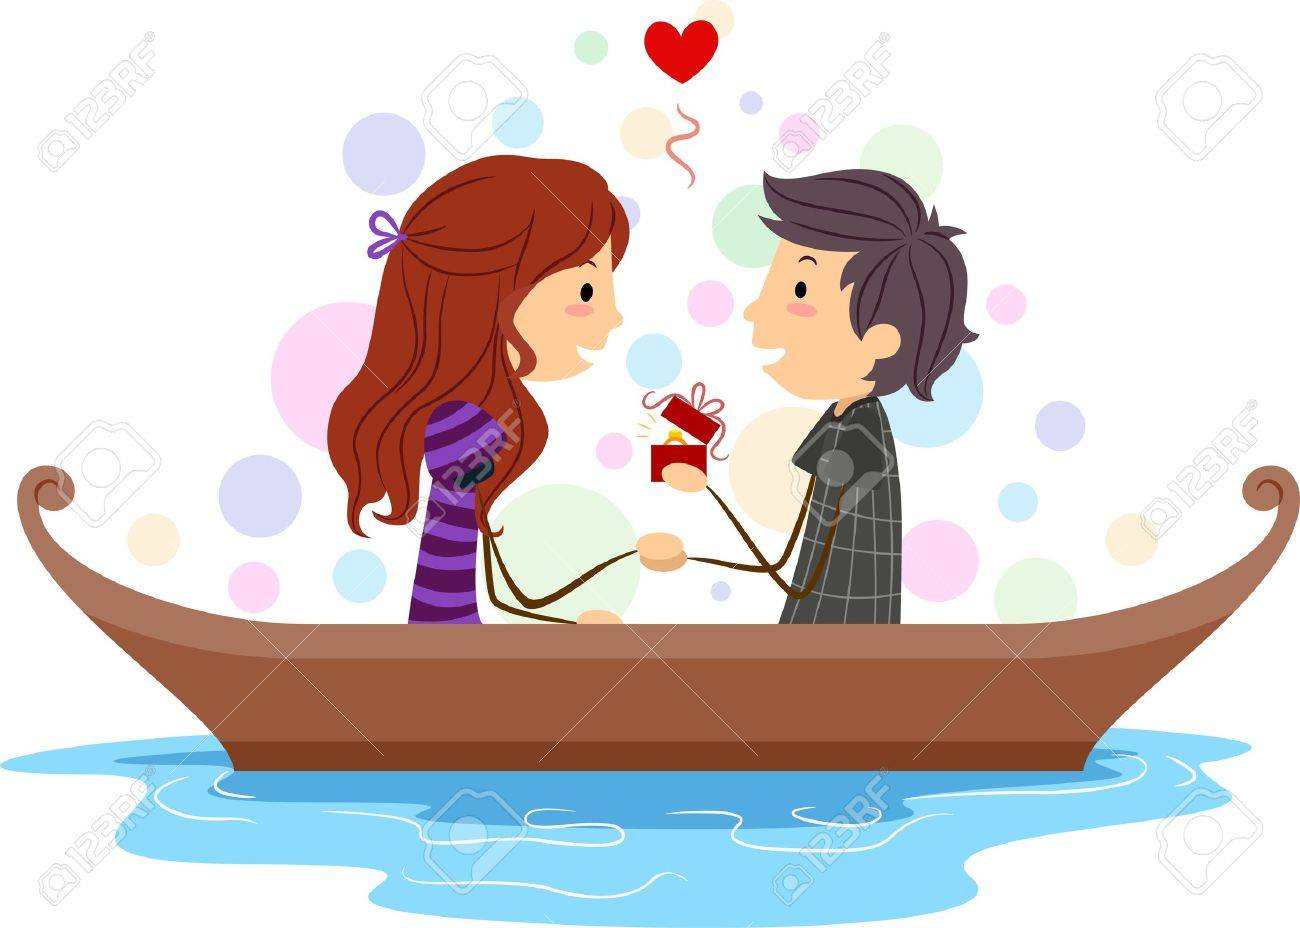 Illustration of a Stick Figure Guy Proposing to His Girl Stock Illustration - 8635524